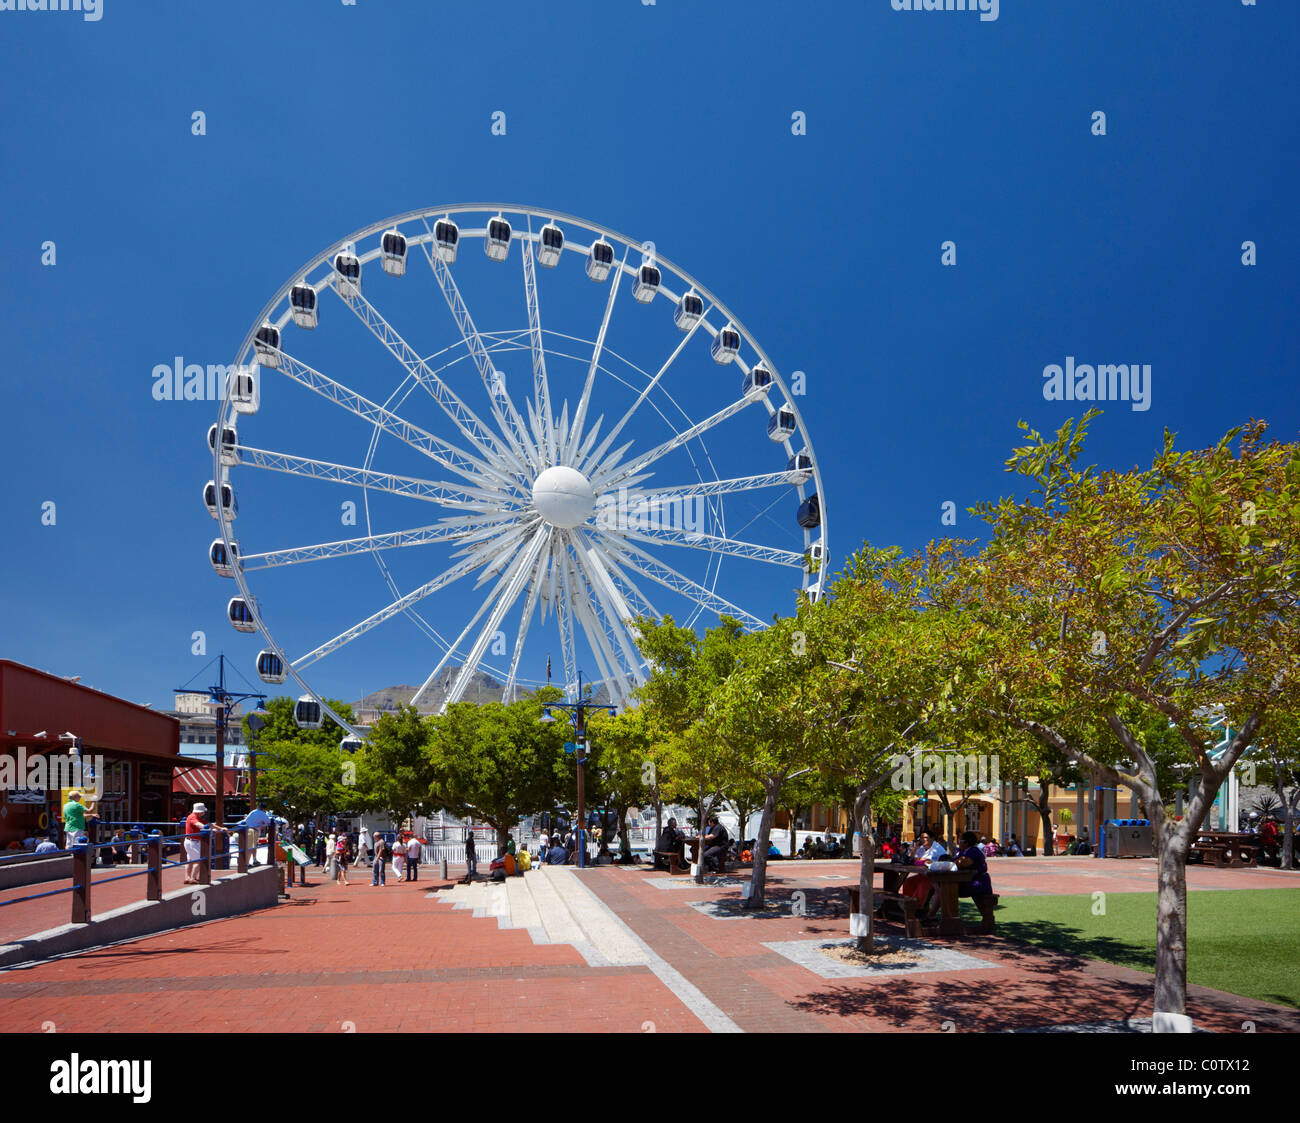 The Wheel of Excellence on V&A Waterfront in Cape Town. Western Cape, South Africa. - Stock Image